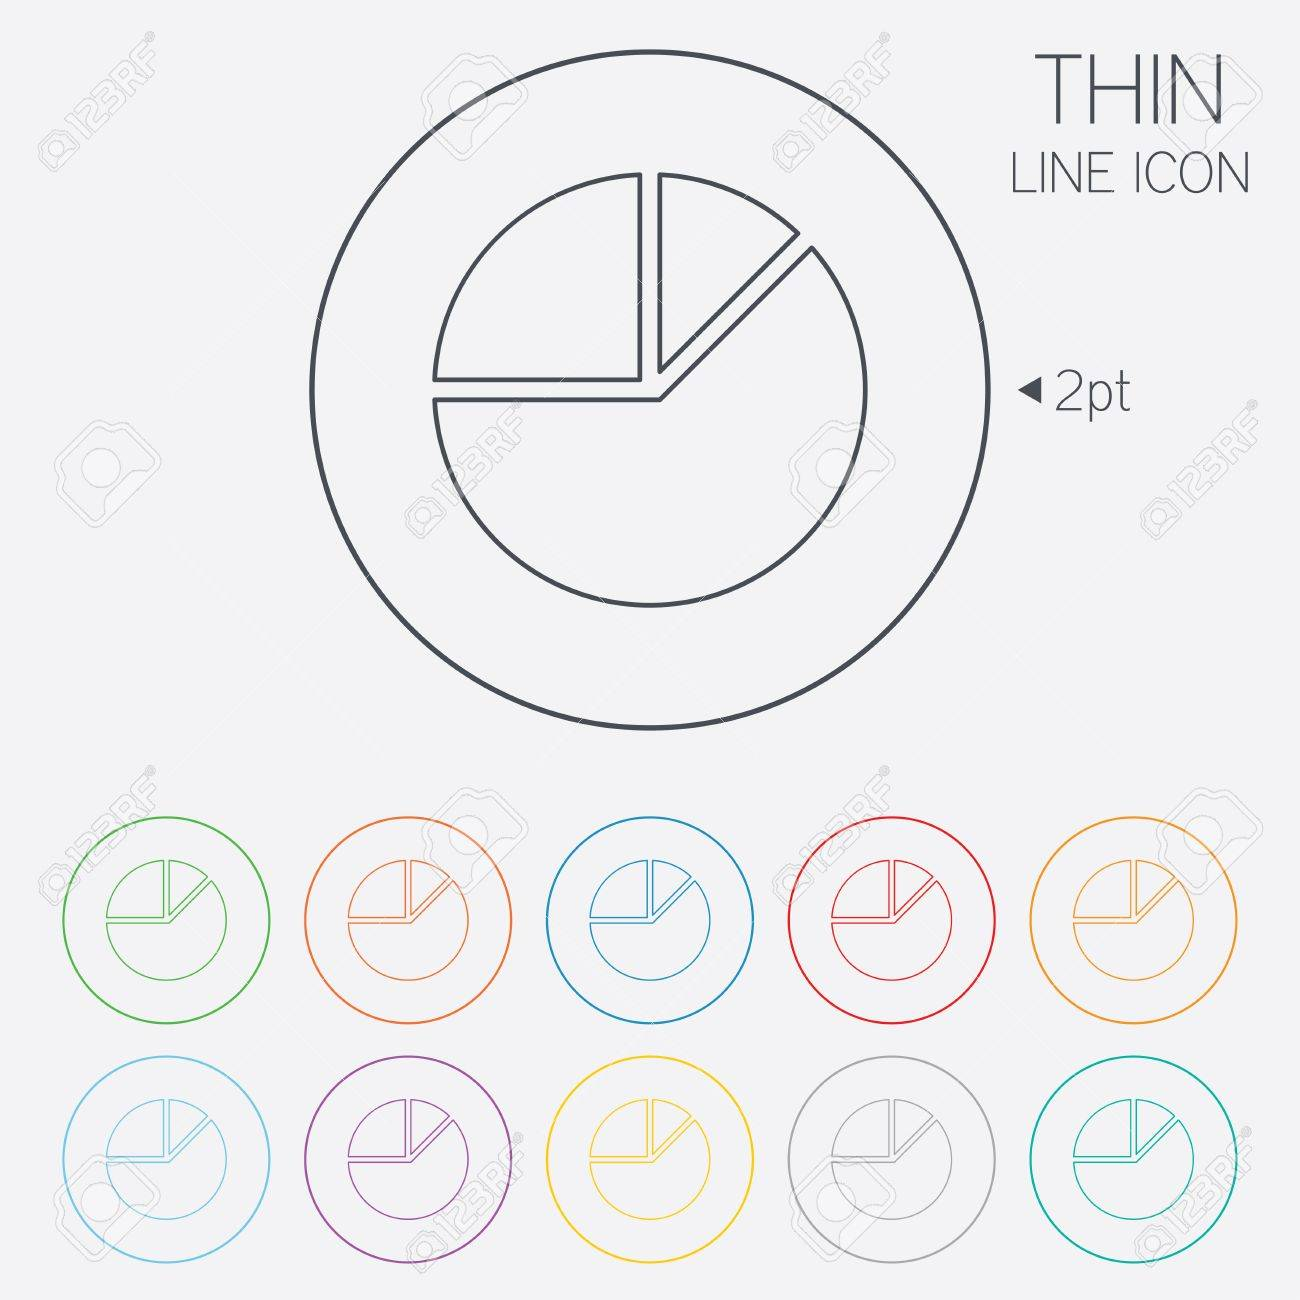 Pie chart with fractions gallery free any chart examples pie chart with fractions gallery free any chart examples pie chart with fractions gallery free any nvjuhfo Choice Image